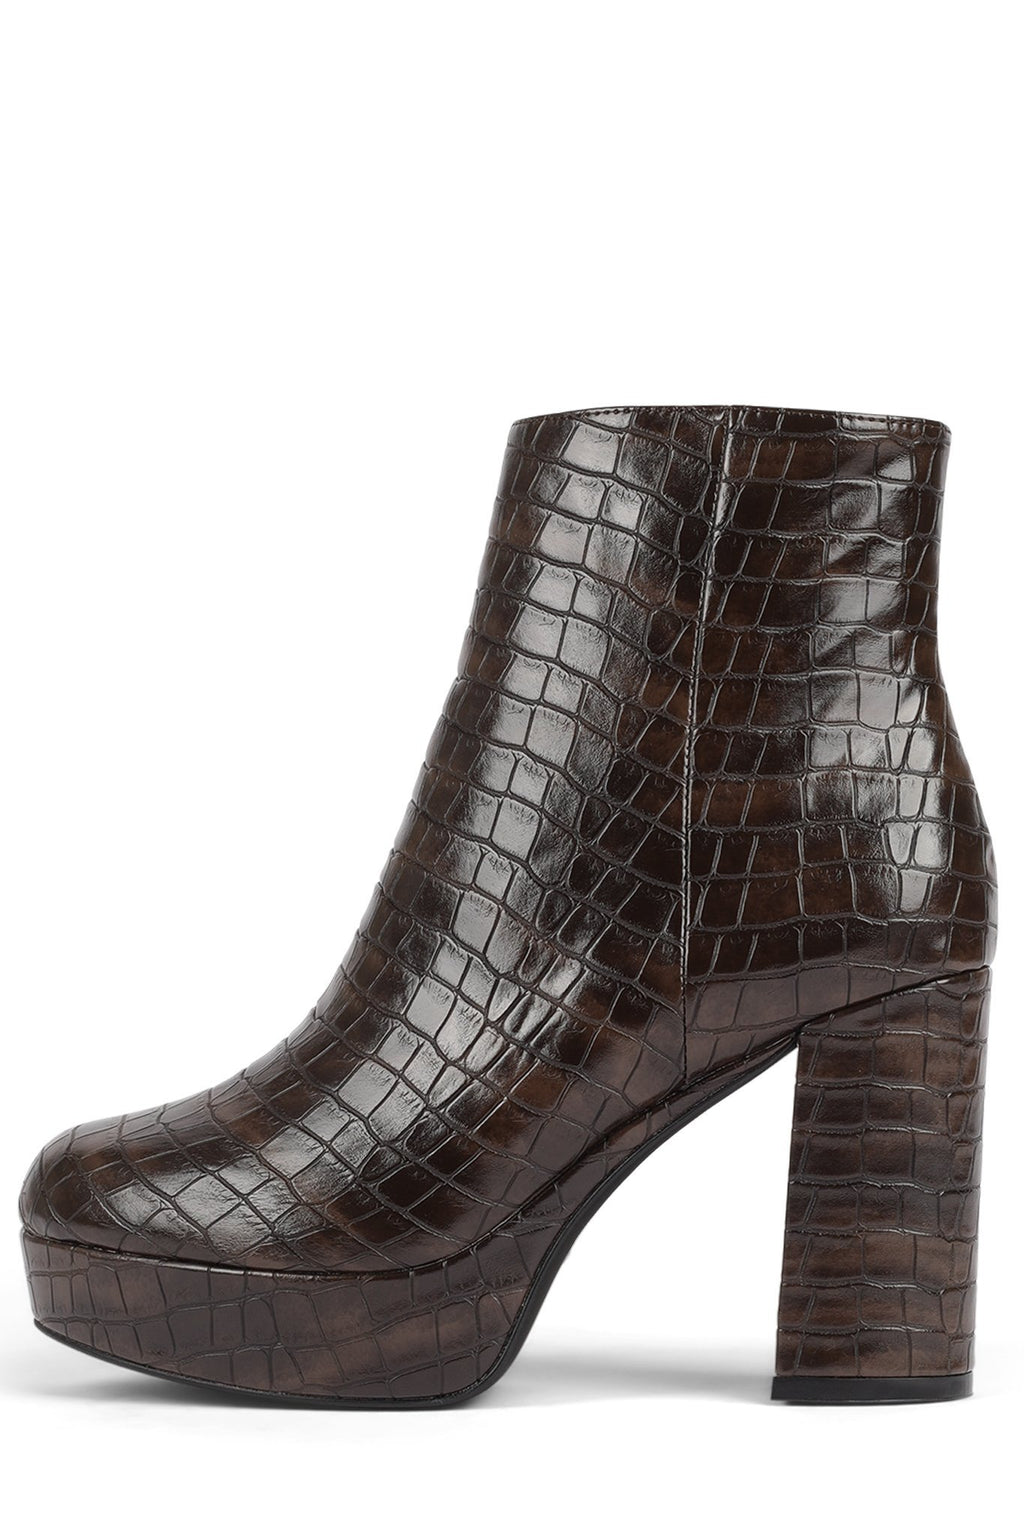 SAHAR Jeffrey Campbell Brown Croco 6